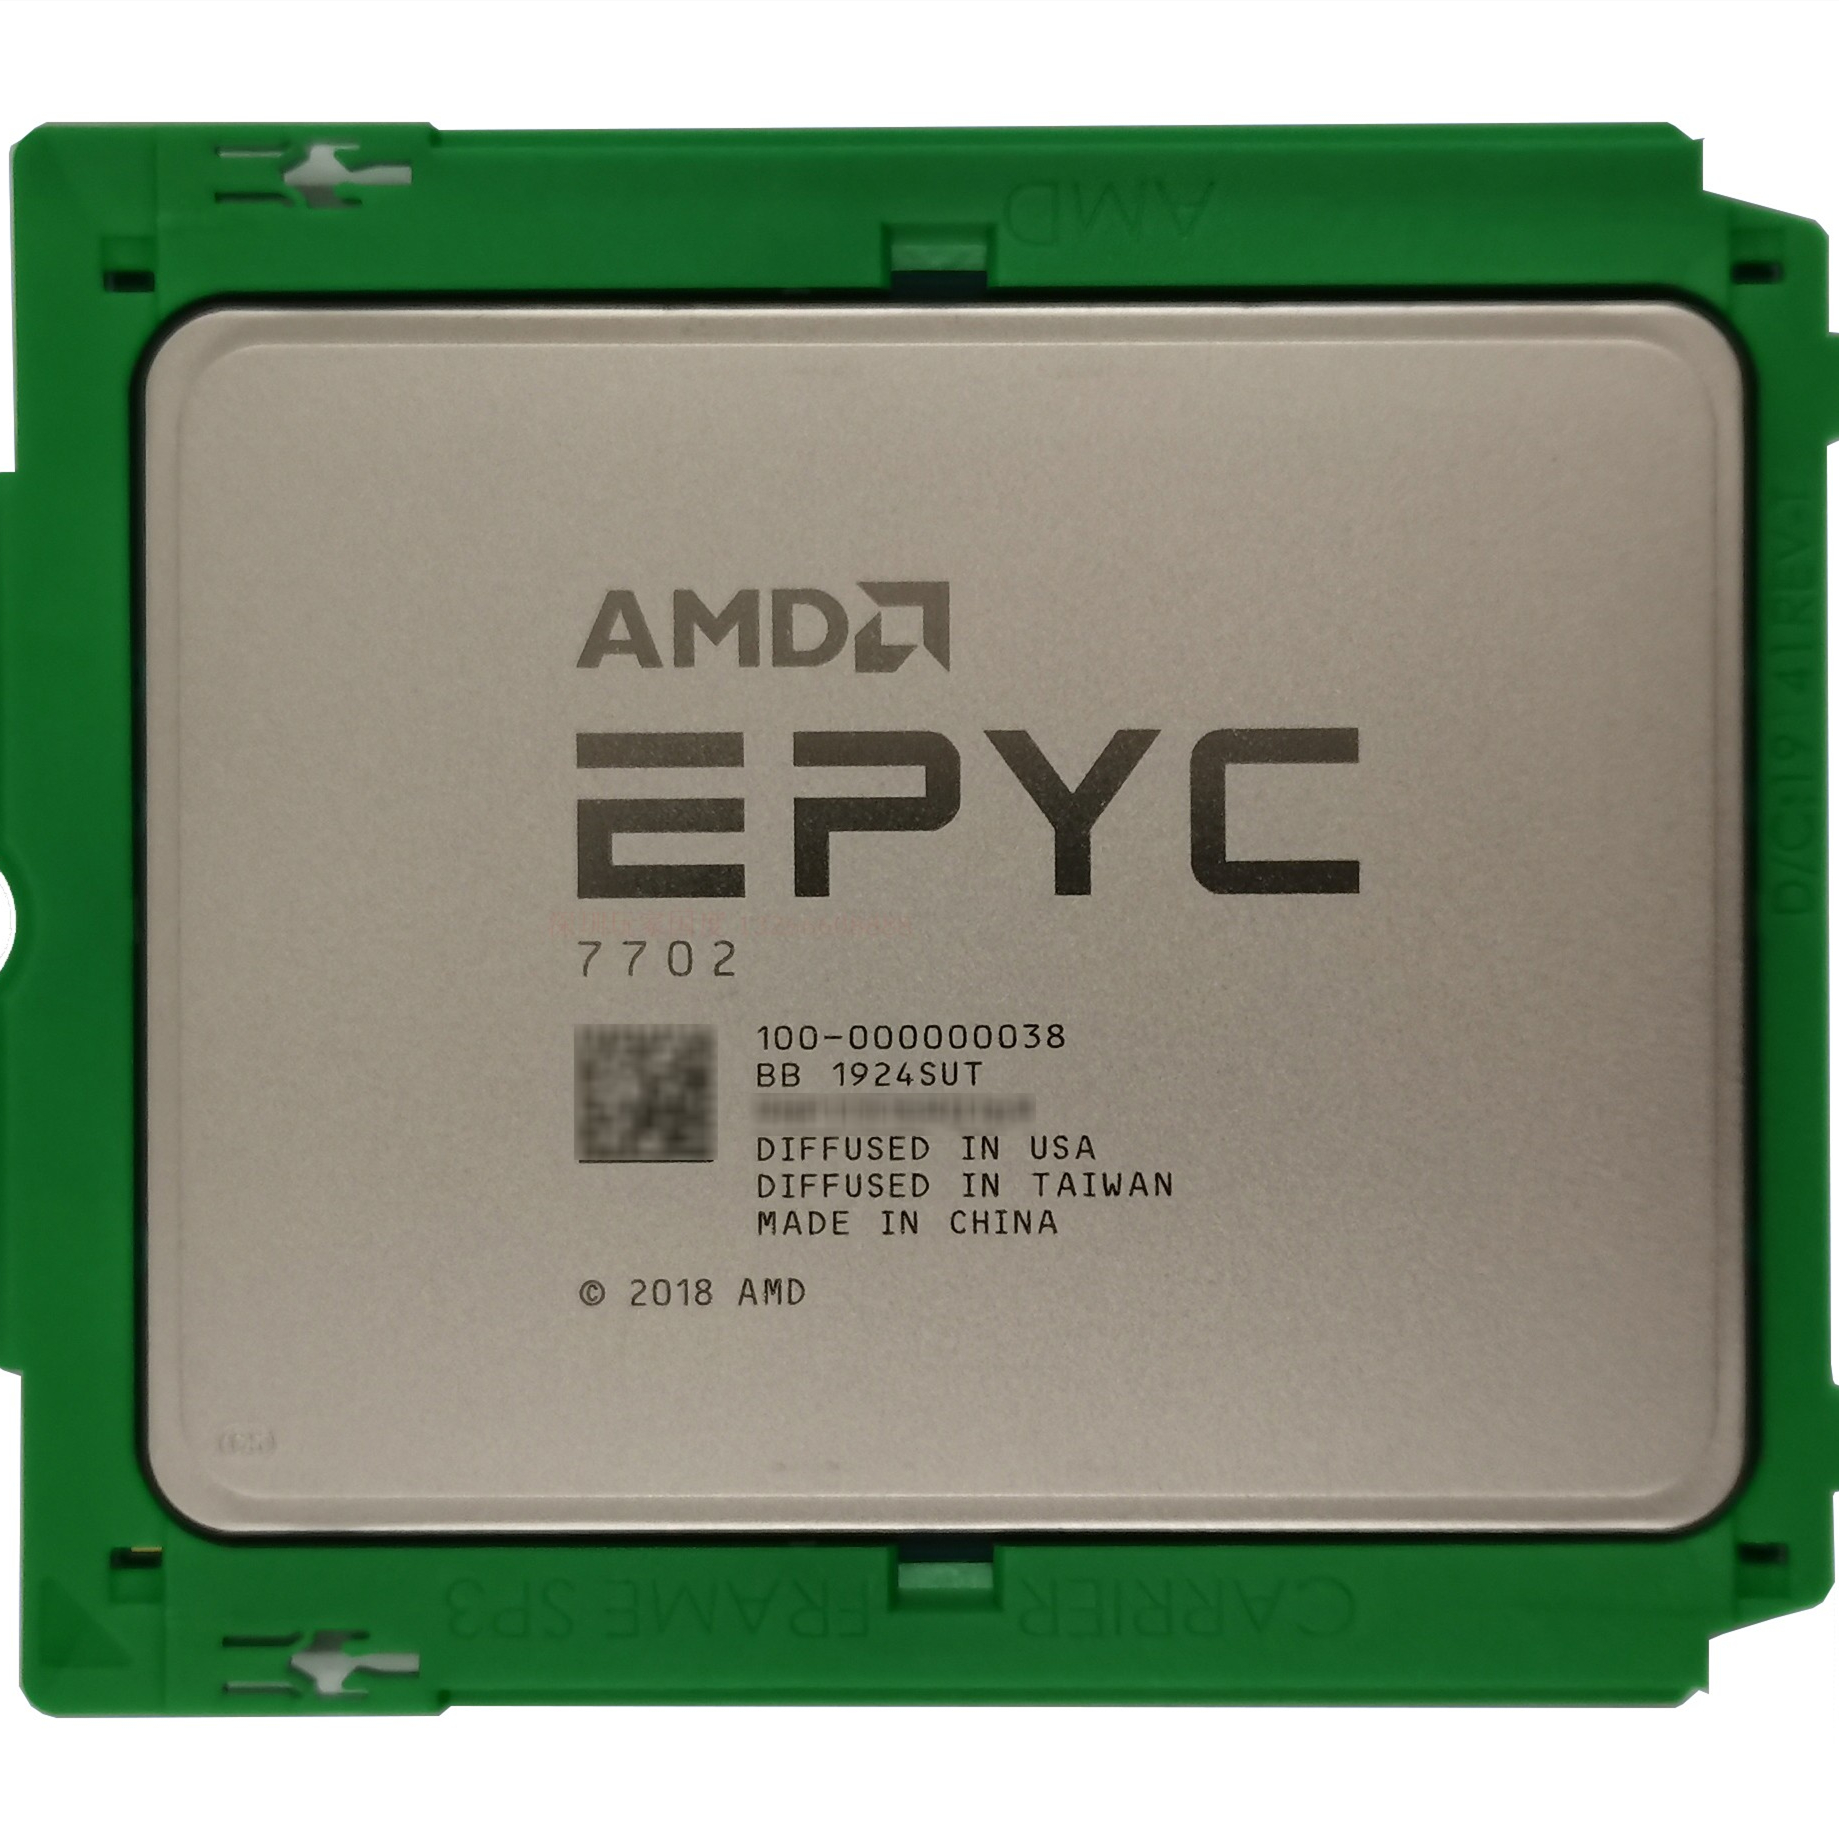 AMD EPYC 7702 Processor 100-000000038 2.0GHz,Brand new,Tray,<strong>P008</strong>